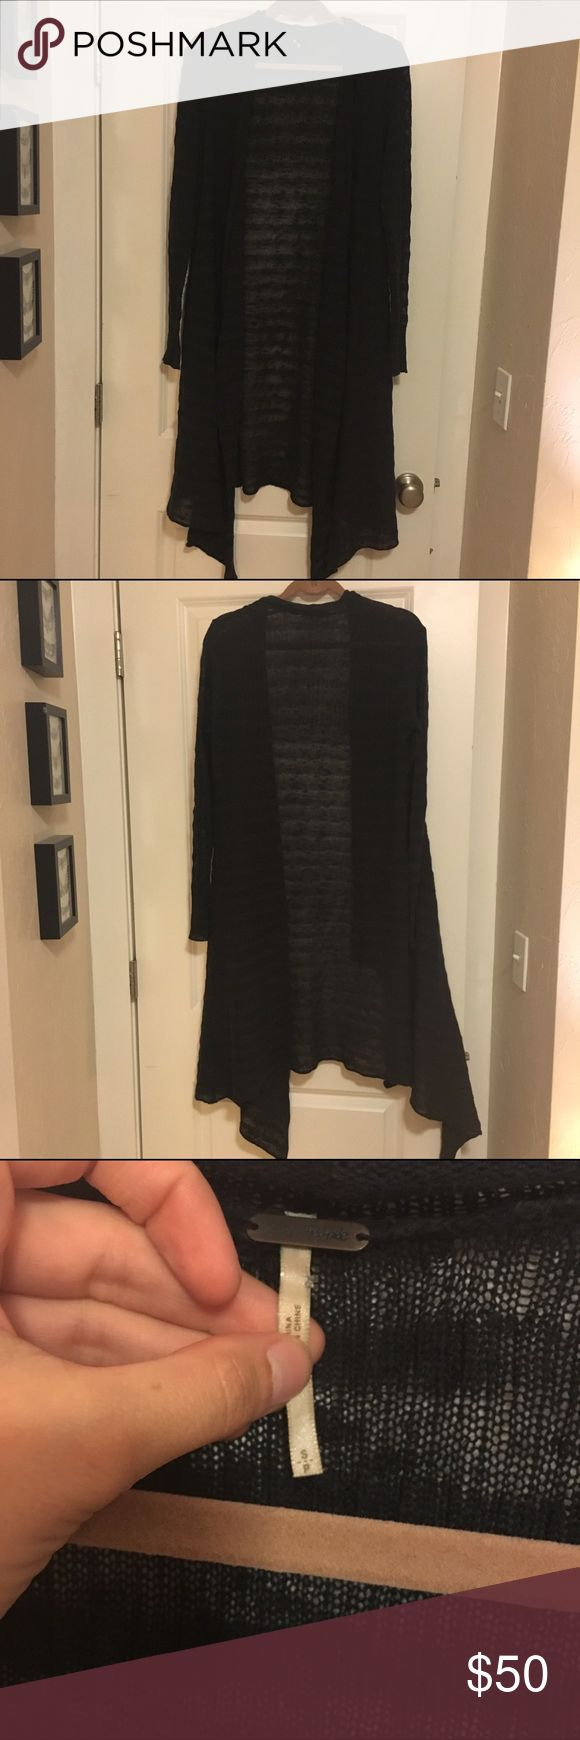 Free People Striped Long Cardigan Duster Black semi-sheer asymmetrical hem light knit duster from Free People. Item has been loved - very, very slight signs of wear but it's still in really really nice shape with tons of life left. Perfect transitional piece. Ask questions and make offers. Free People Sweaters Cardigans